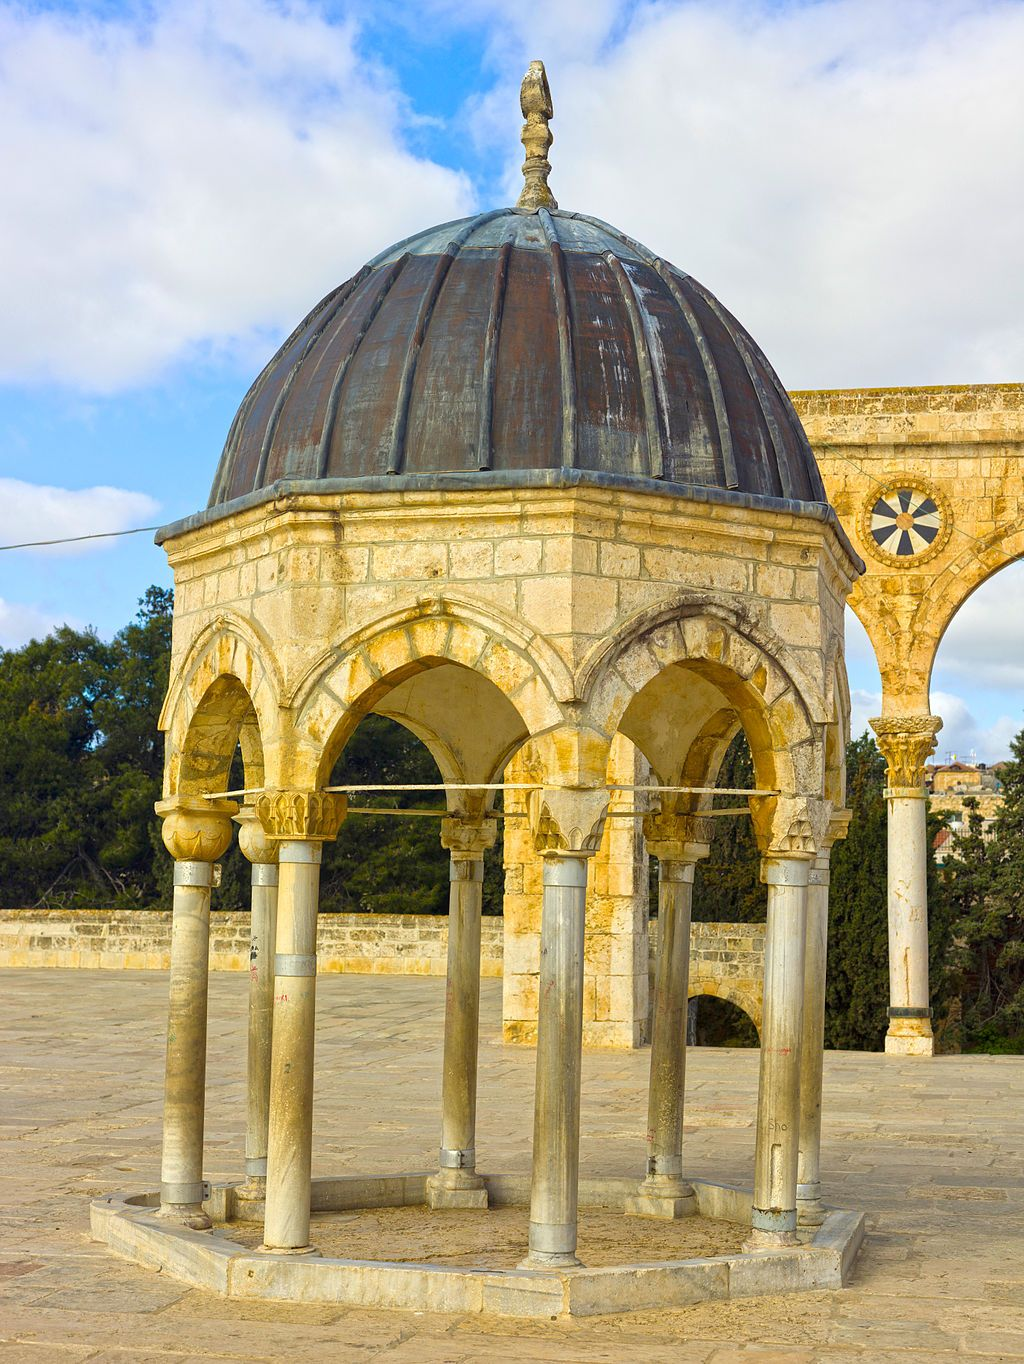 The Dome of the Spirits-Tablets-Dome of the Rock.